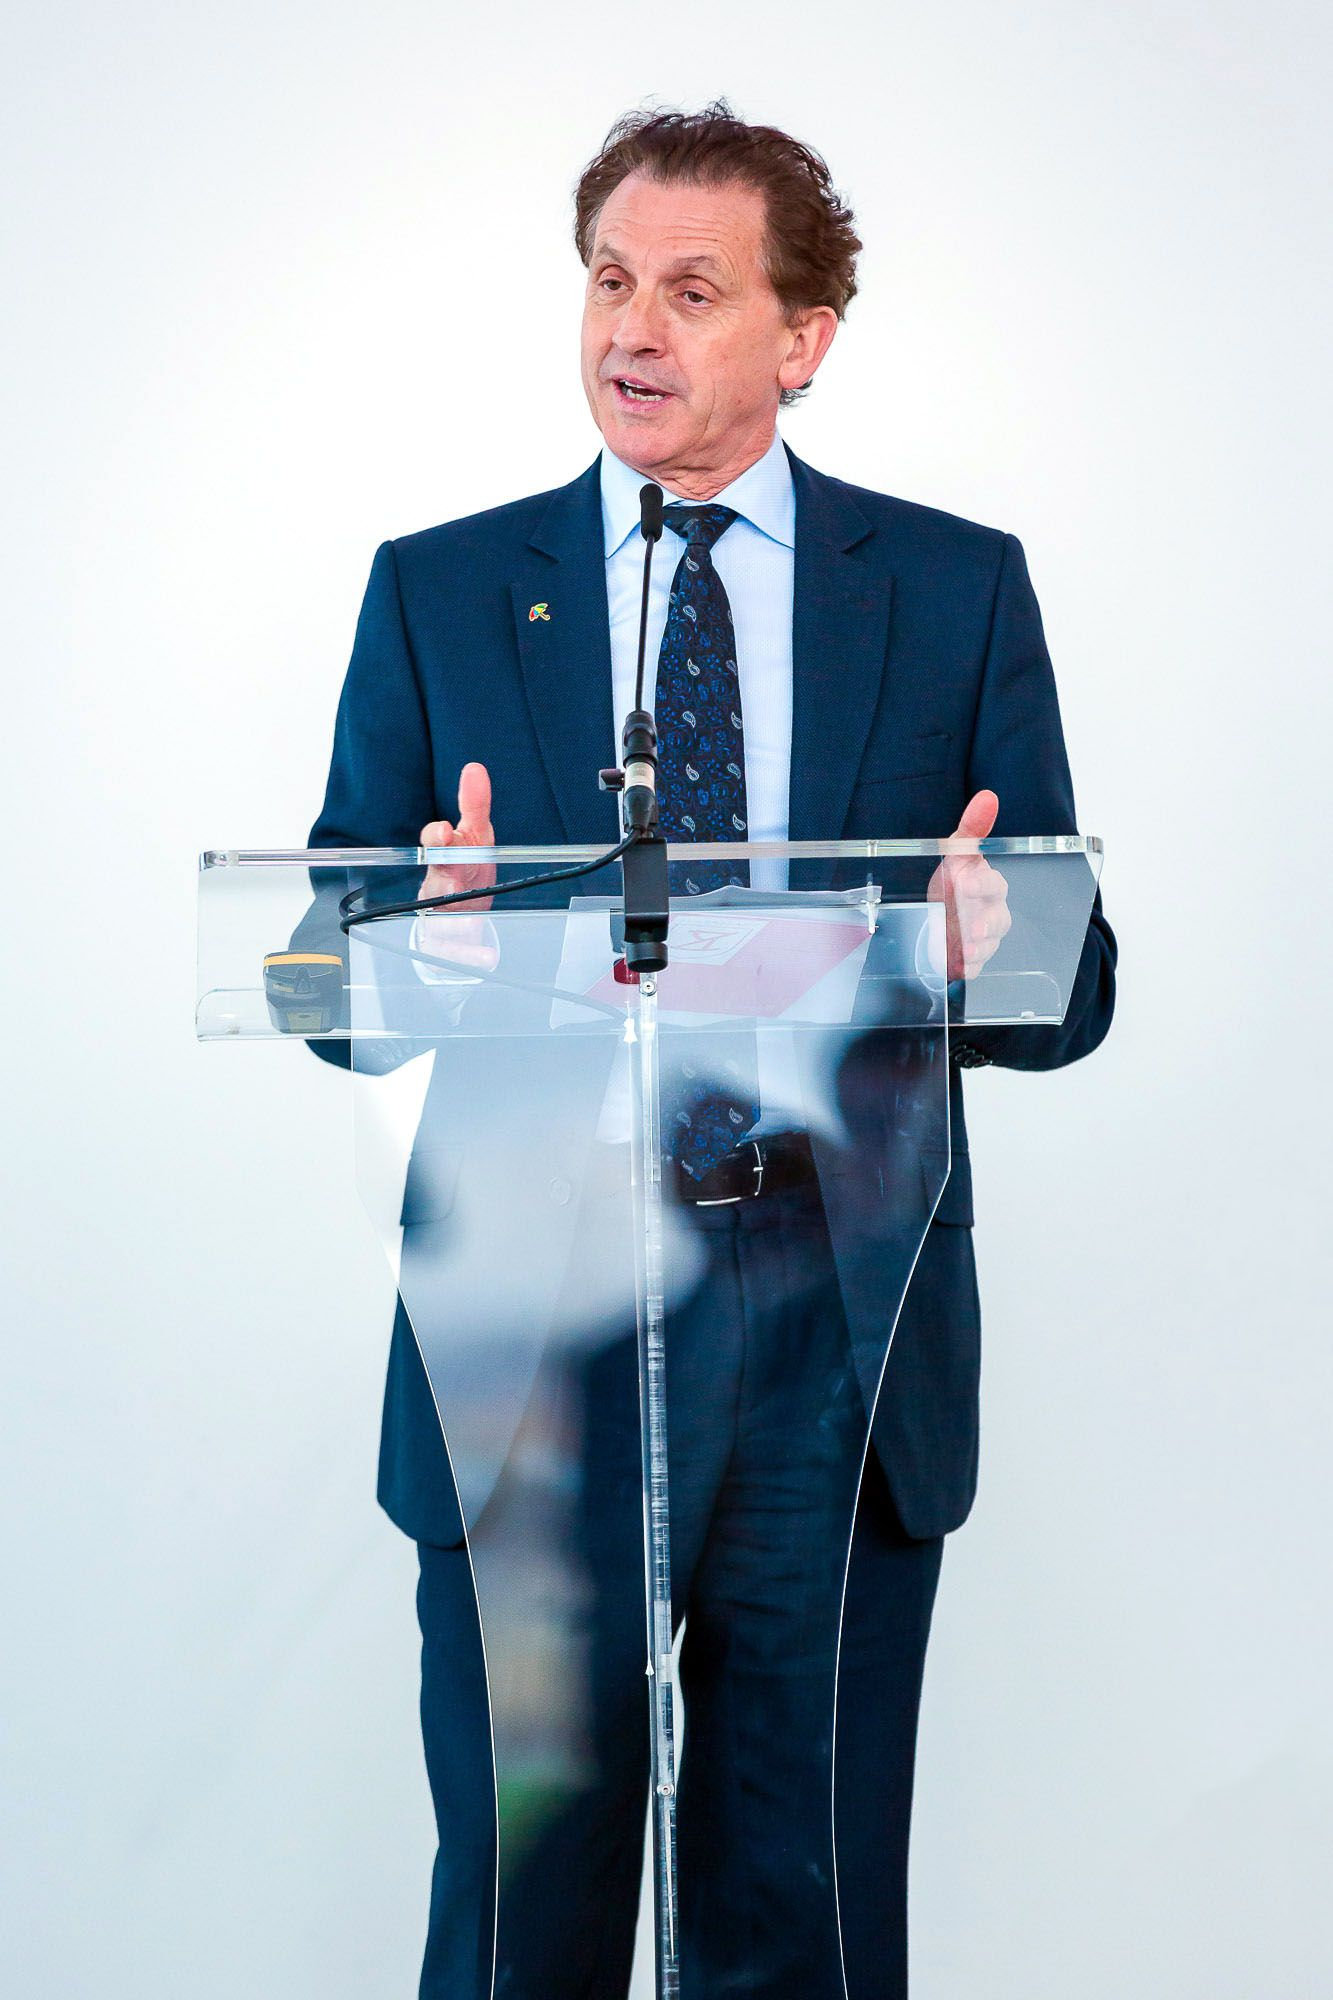 corporate-event-launch-photography-speaker-photo